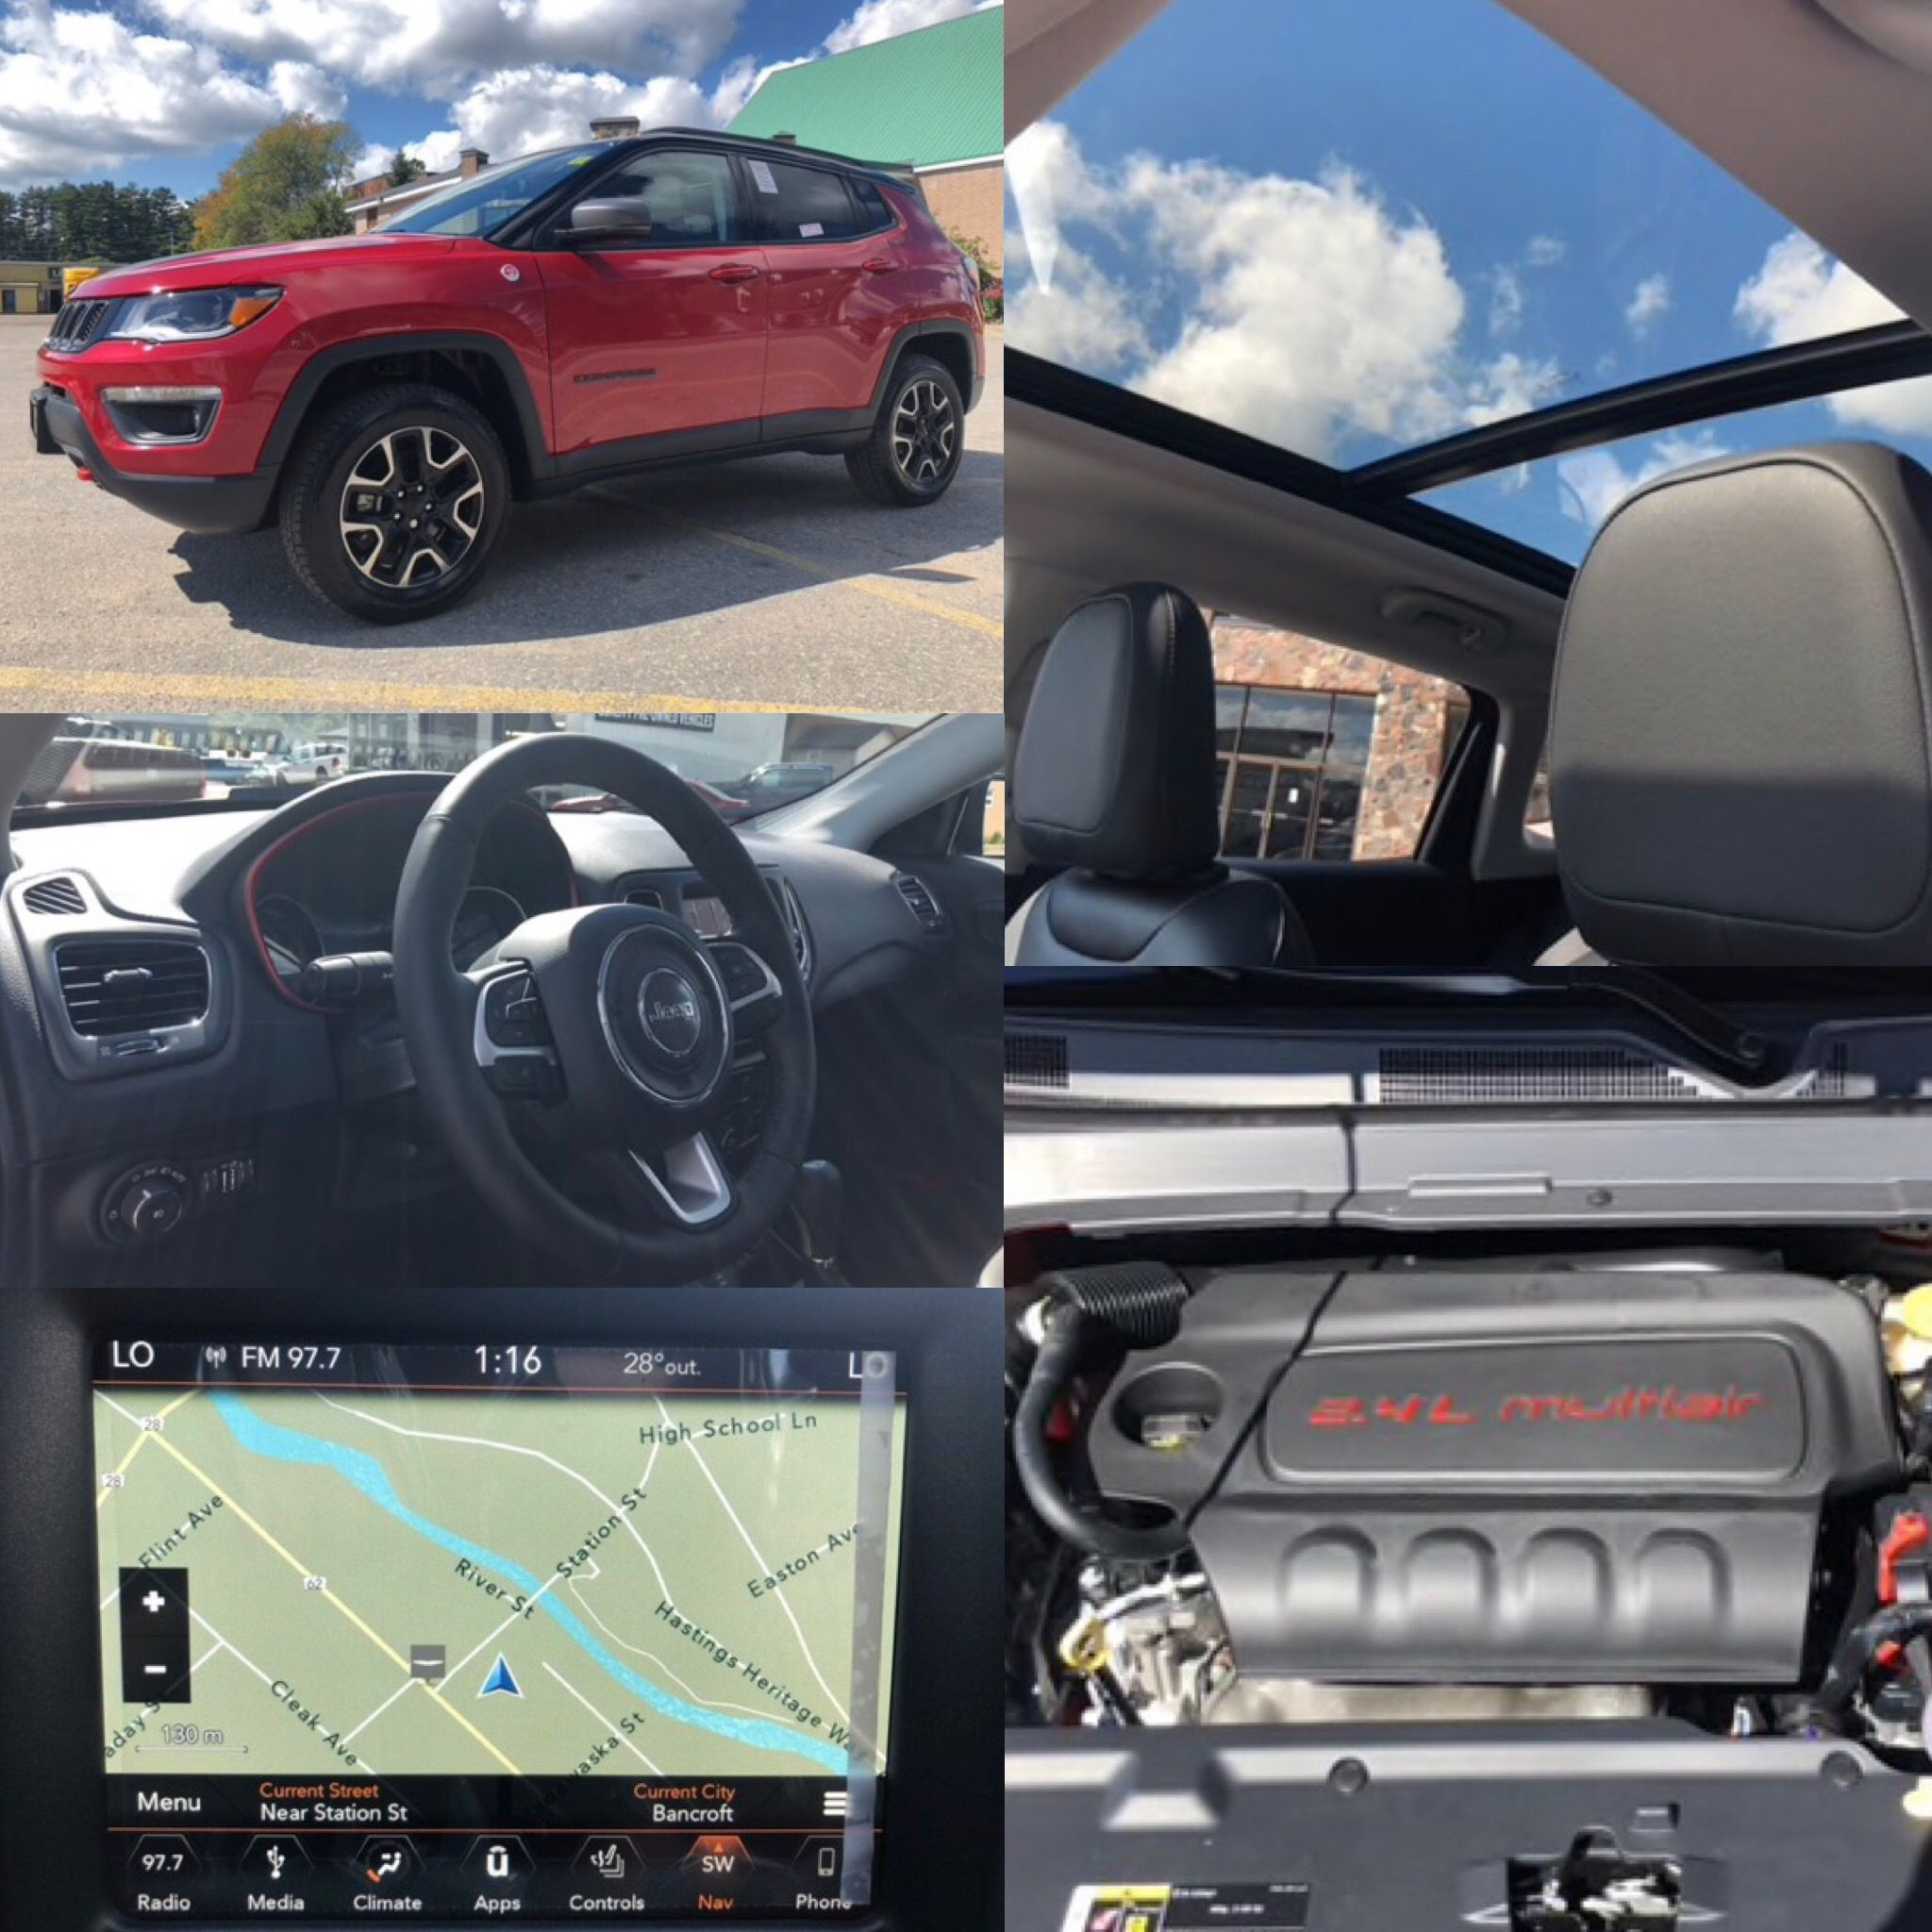 2019 Redline Pearl Jeep Compass Trailhawk 4x4 Leather Nav Bluetooth Htd Seats Backup Cam Stock 19055 Click Pic For More Info With Images Jeep Compass Jeep Compass